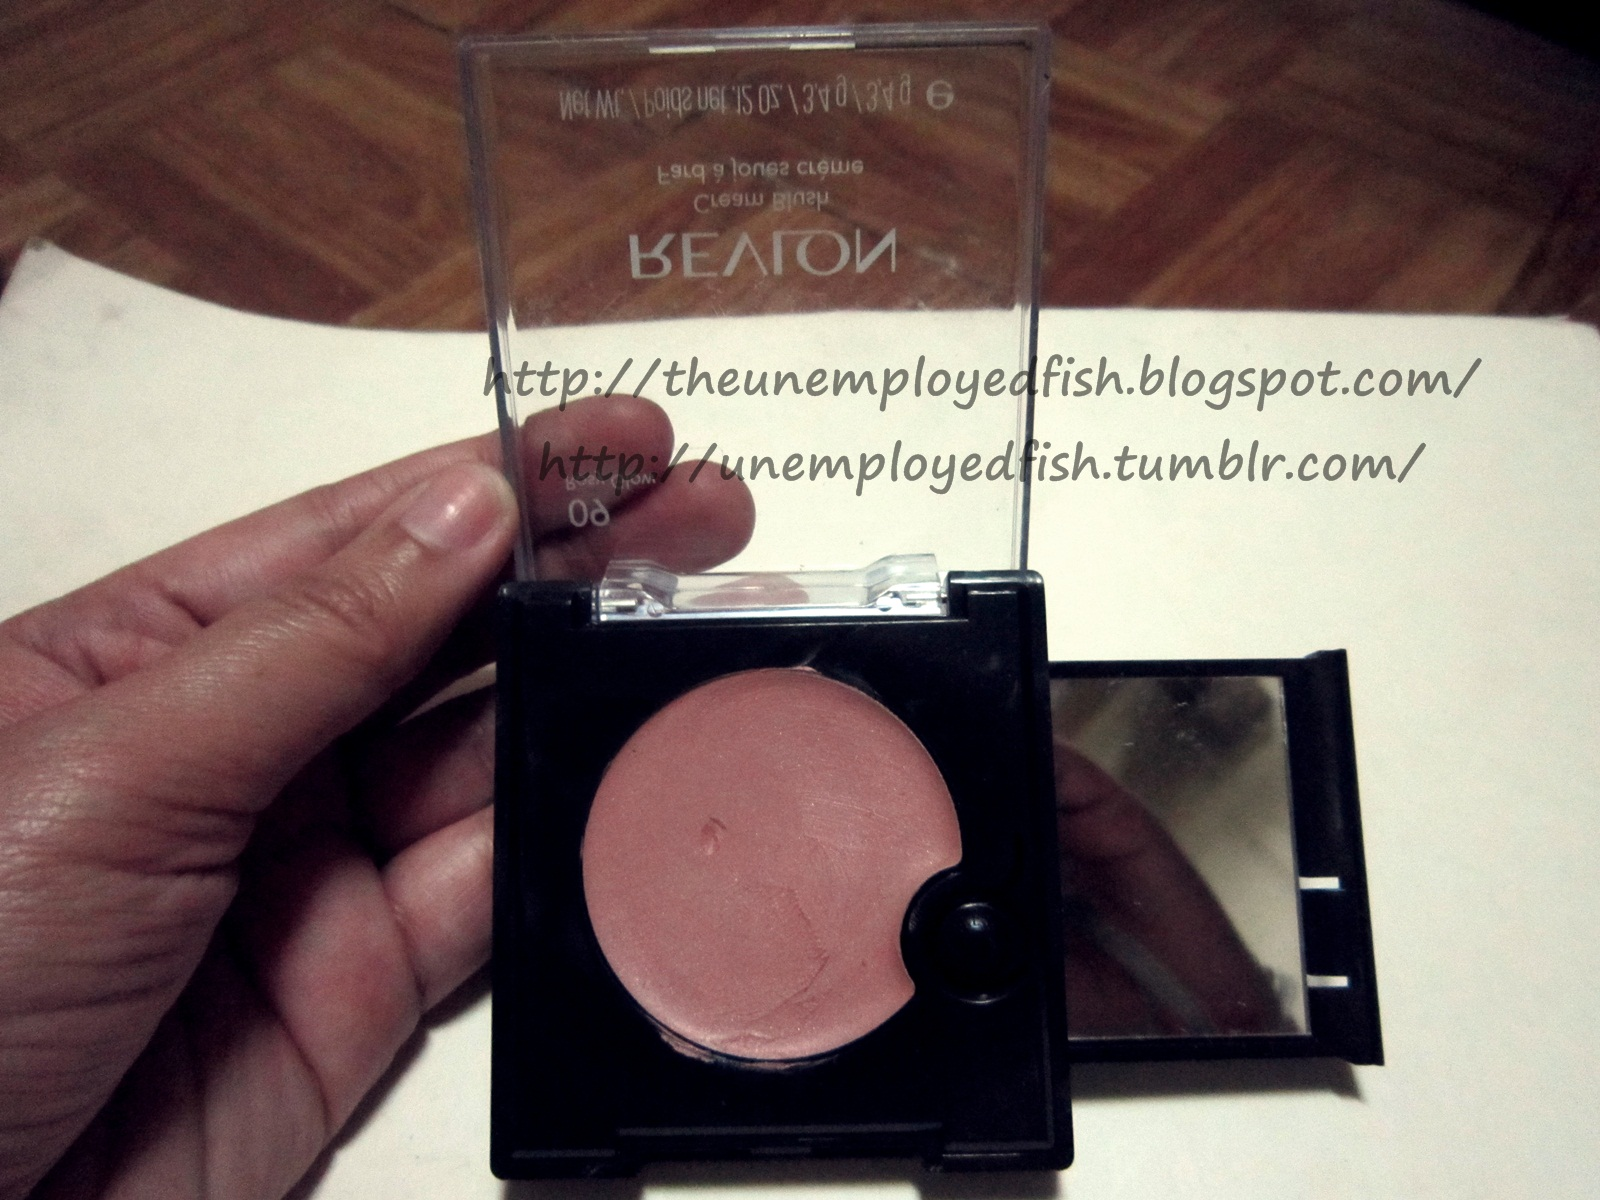 The Unemployed Fish Review Revlon Cream Blush Rosy Glow 09